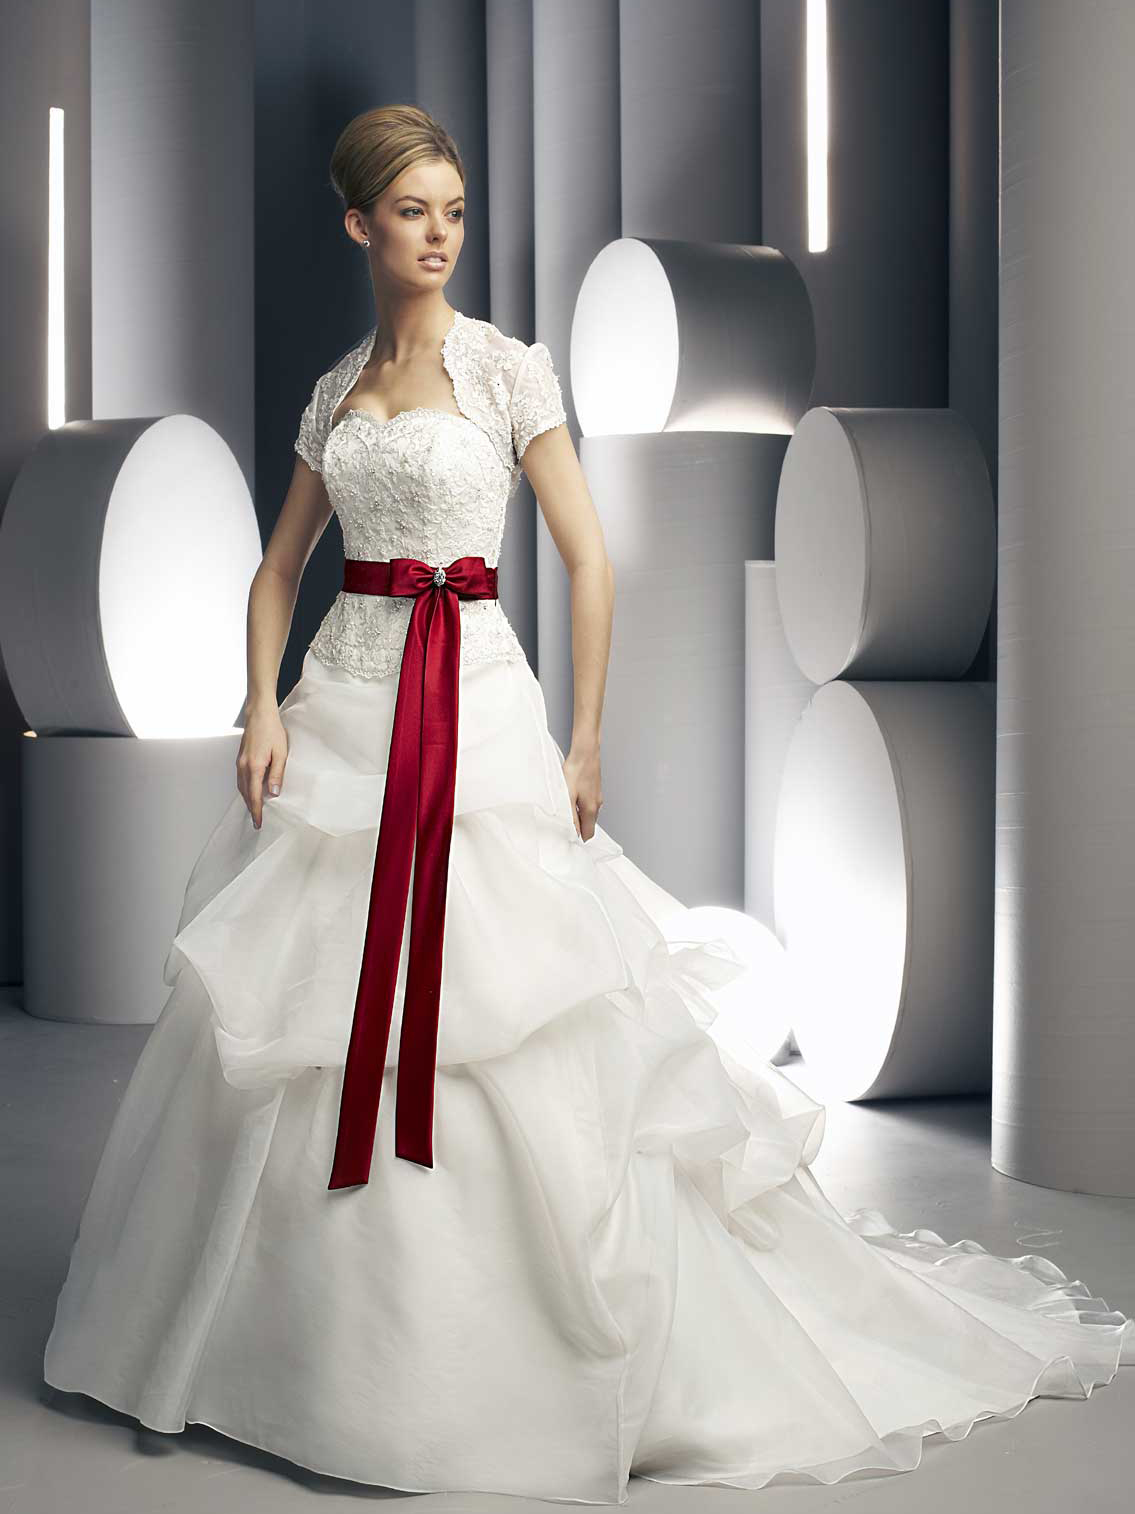 how to make a second hand wedding dress second hand wedding dress wedding dress